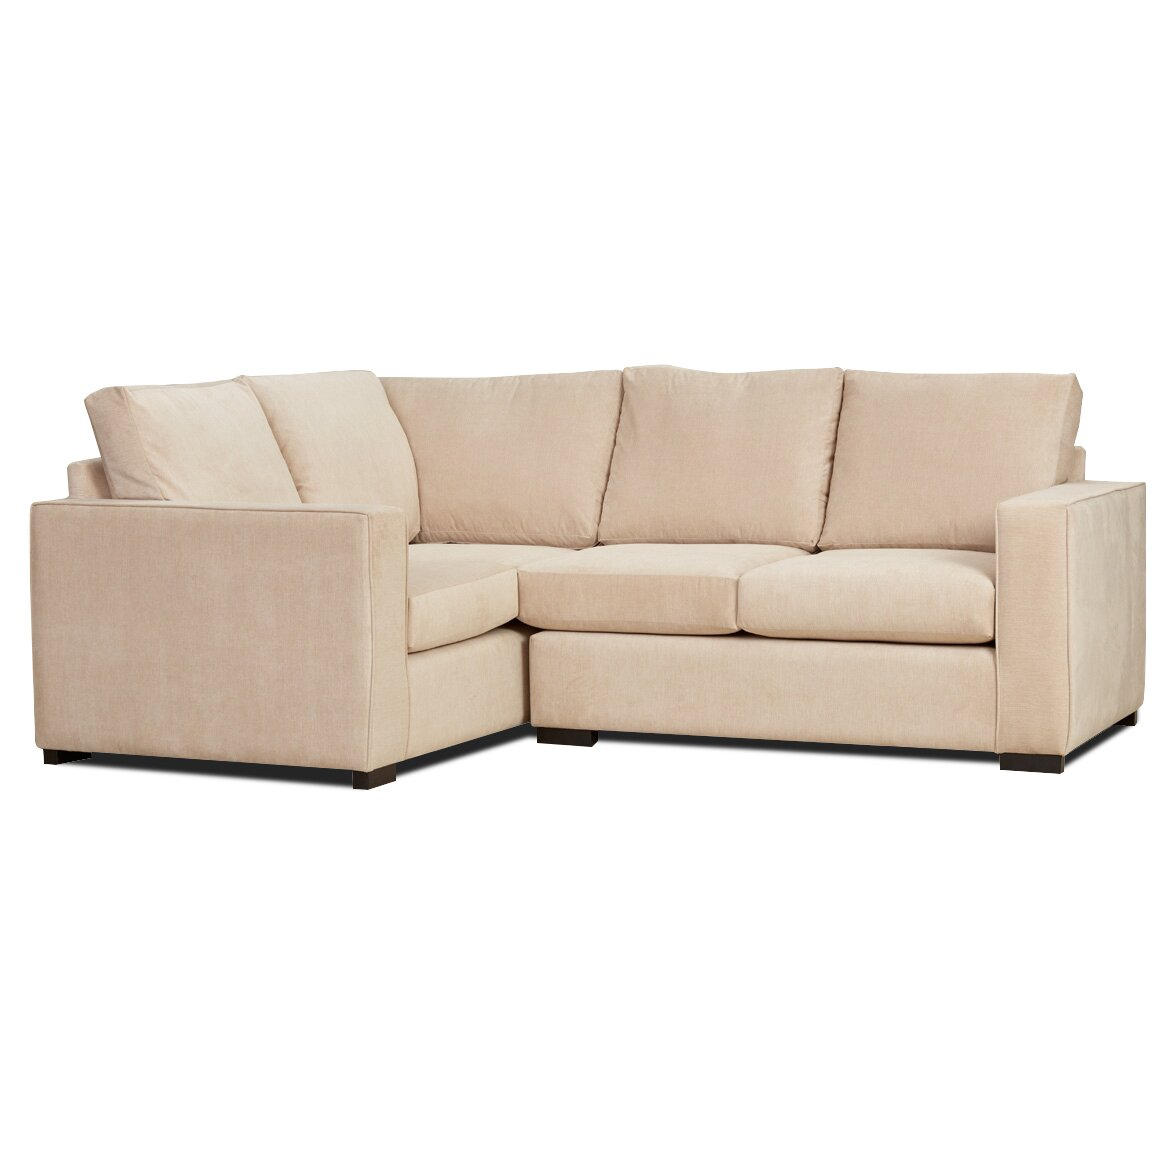 Sofa factory issac corner sofa wayfair uk for Sofa company